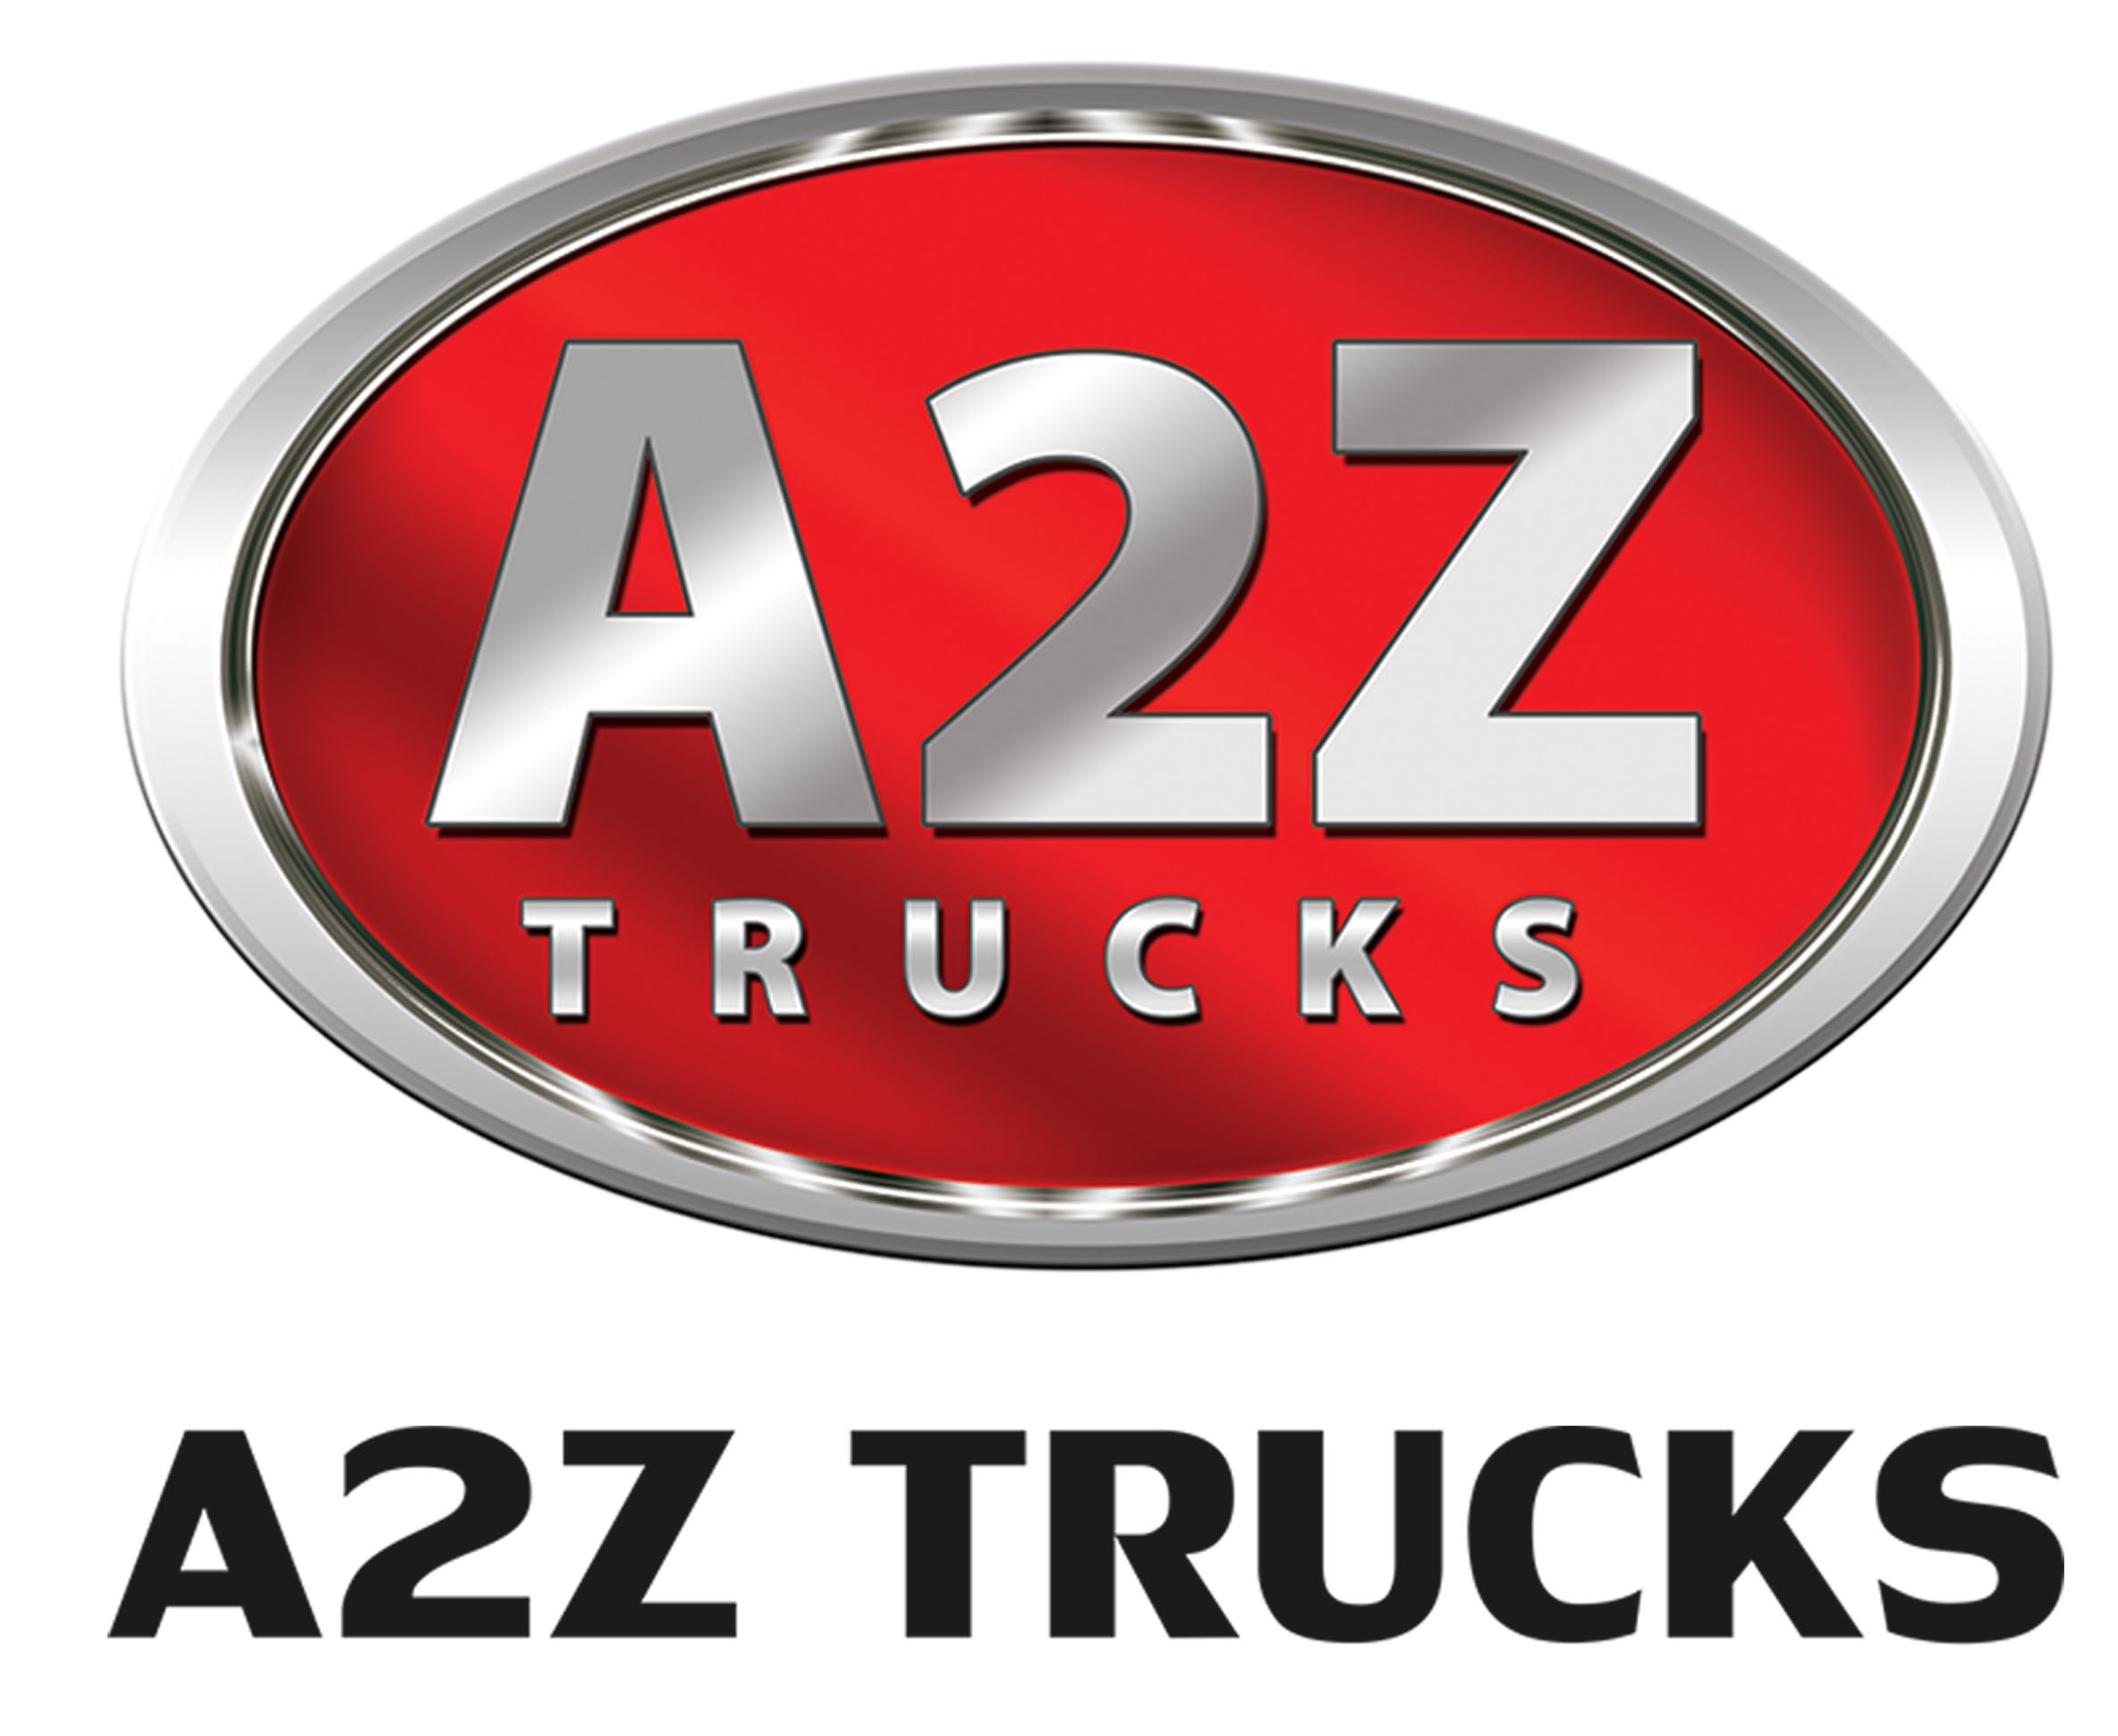 Find A2Z Trucks's adverts listed on Junk Mail